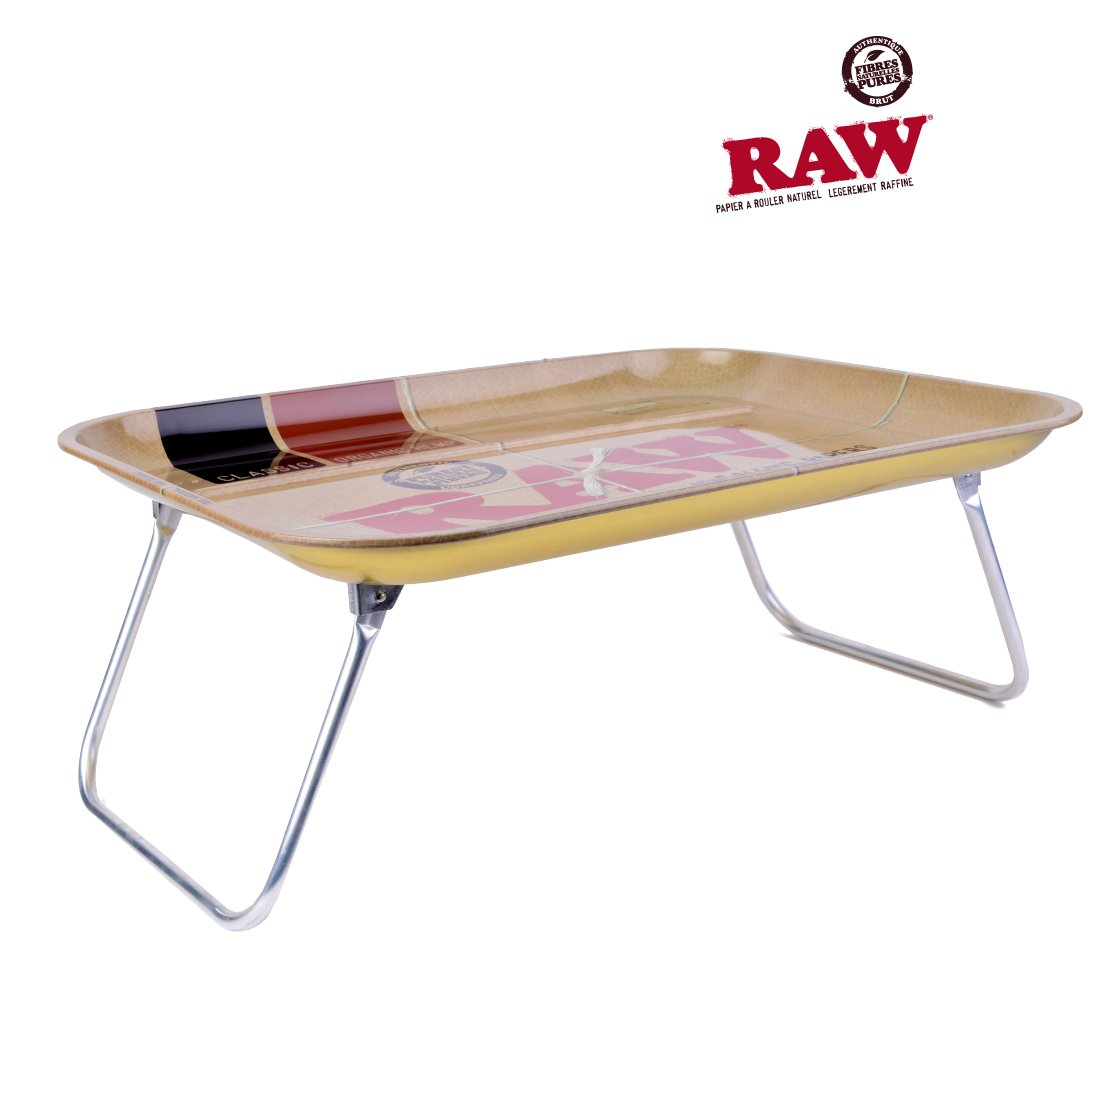 RAW Dinner LAP Rolling Tray XXL by RAW